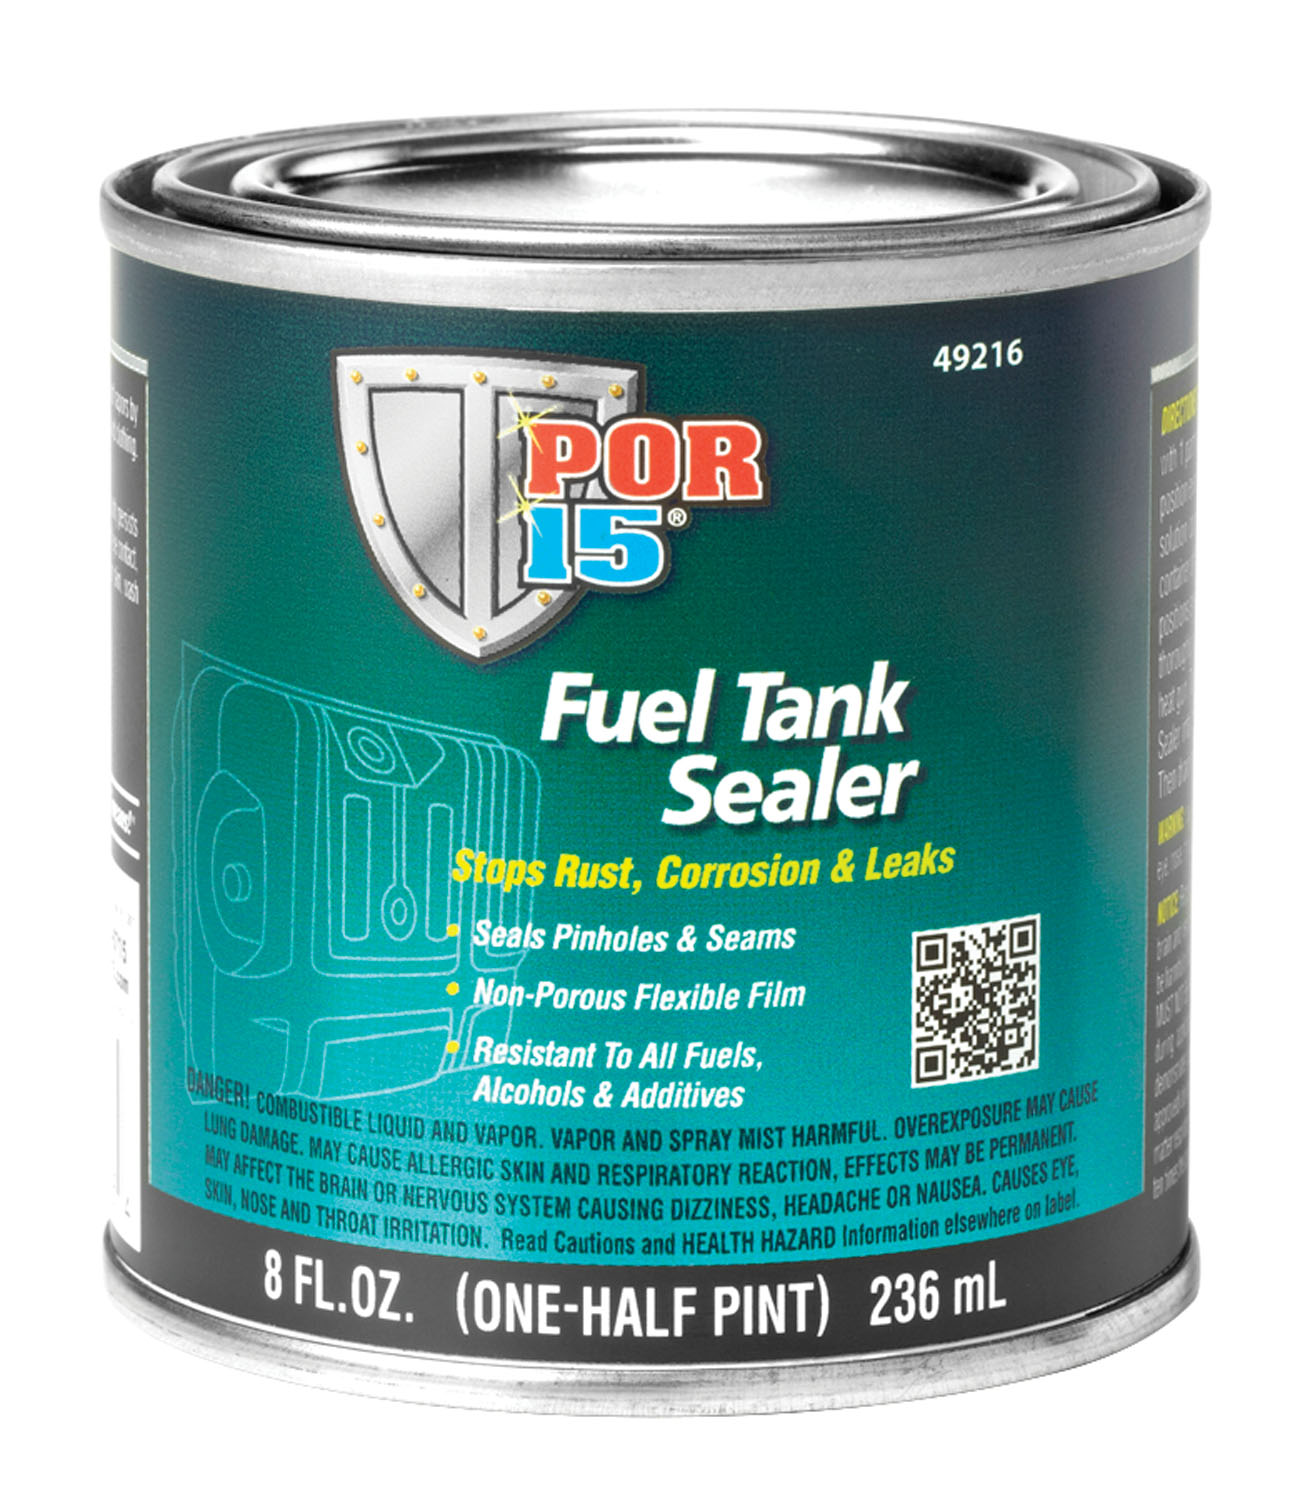 POR-15 Fuel Tank Sealer, 8 oz.